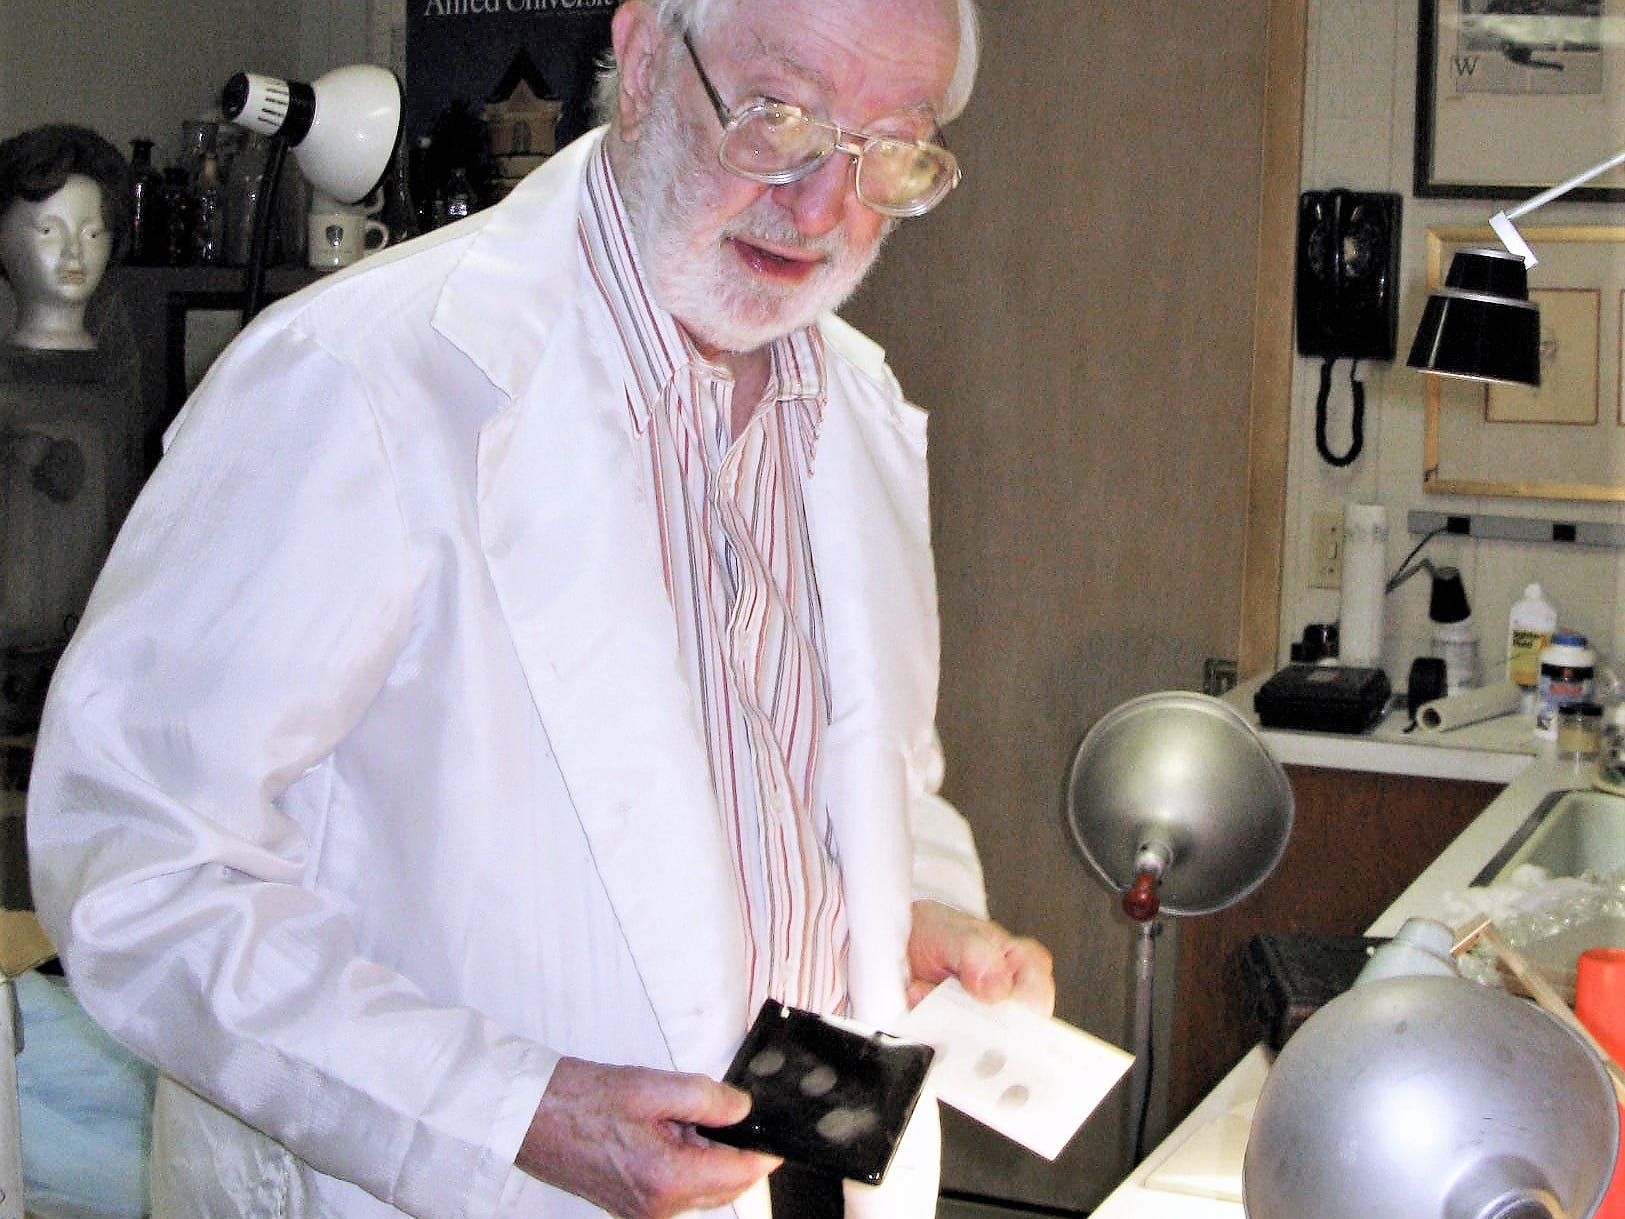 Herbert MacDonell, working in the laboratory at his South Corning home, demonstrates a fingerprinting technique he perfected.